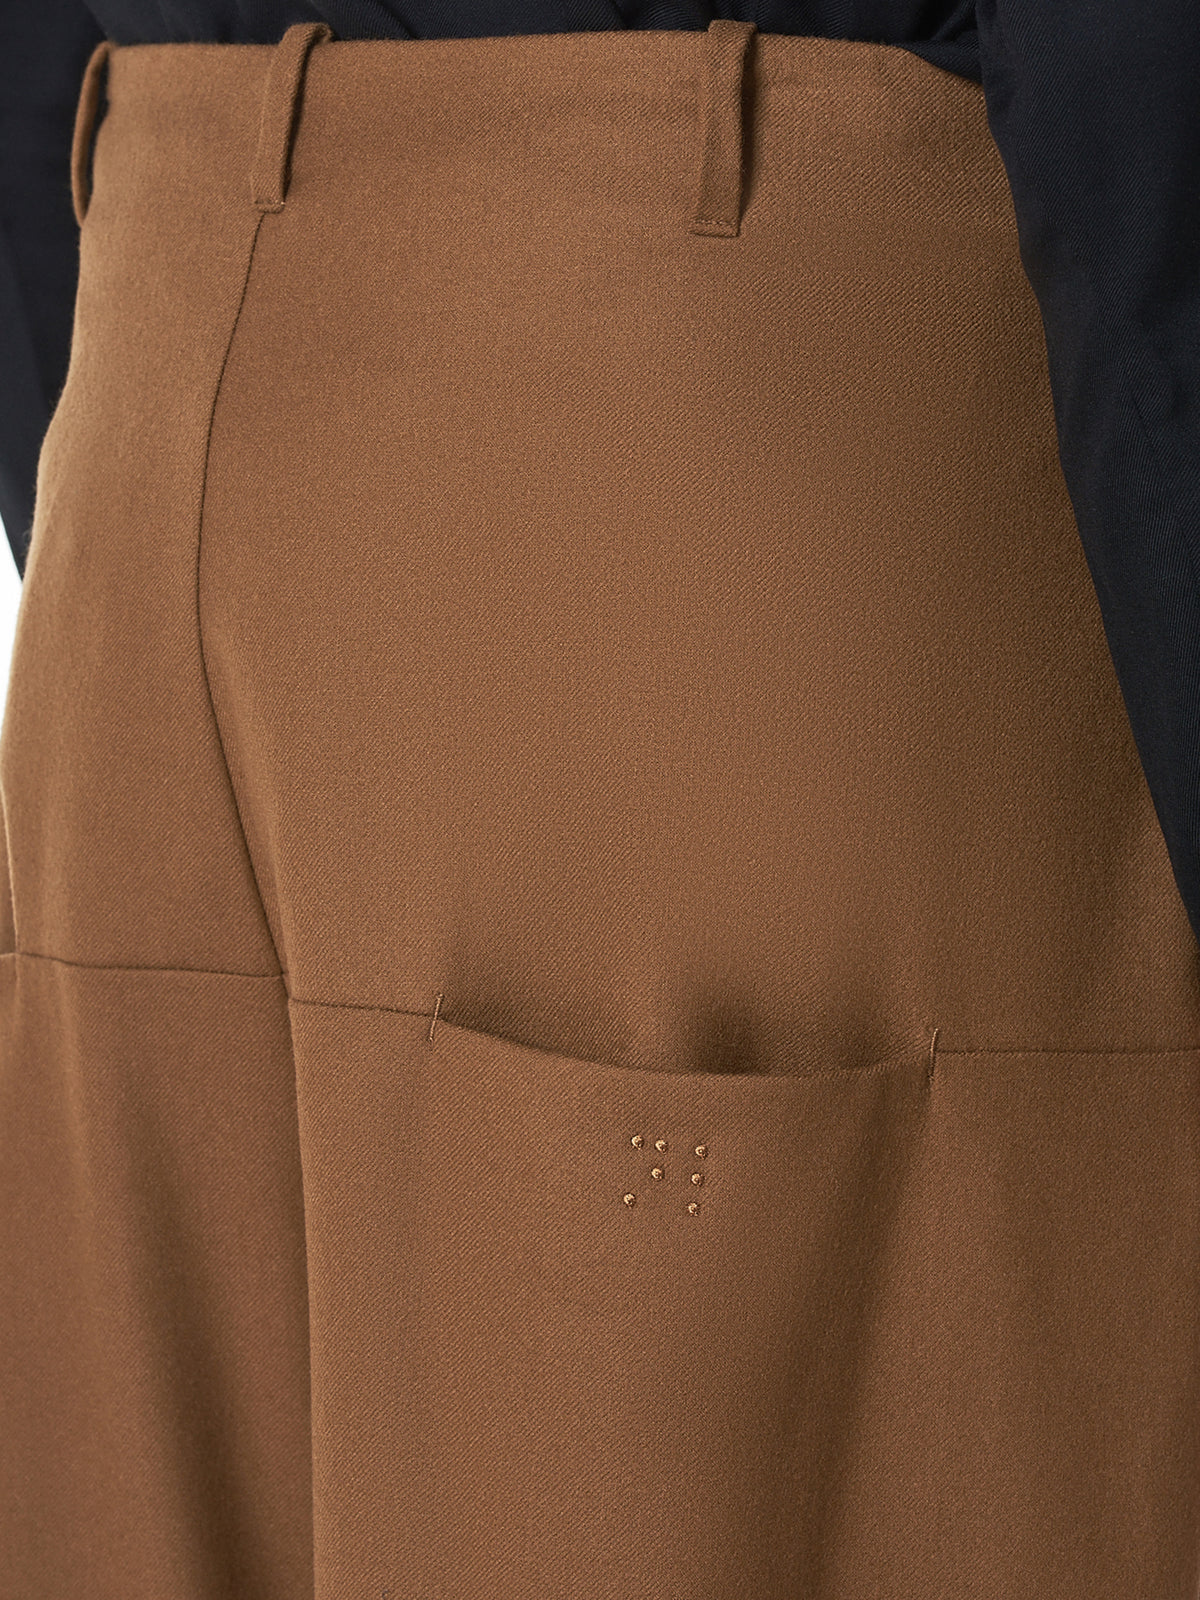 Neverlamp Cropped Trouser - Hlorenzo Detail 2